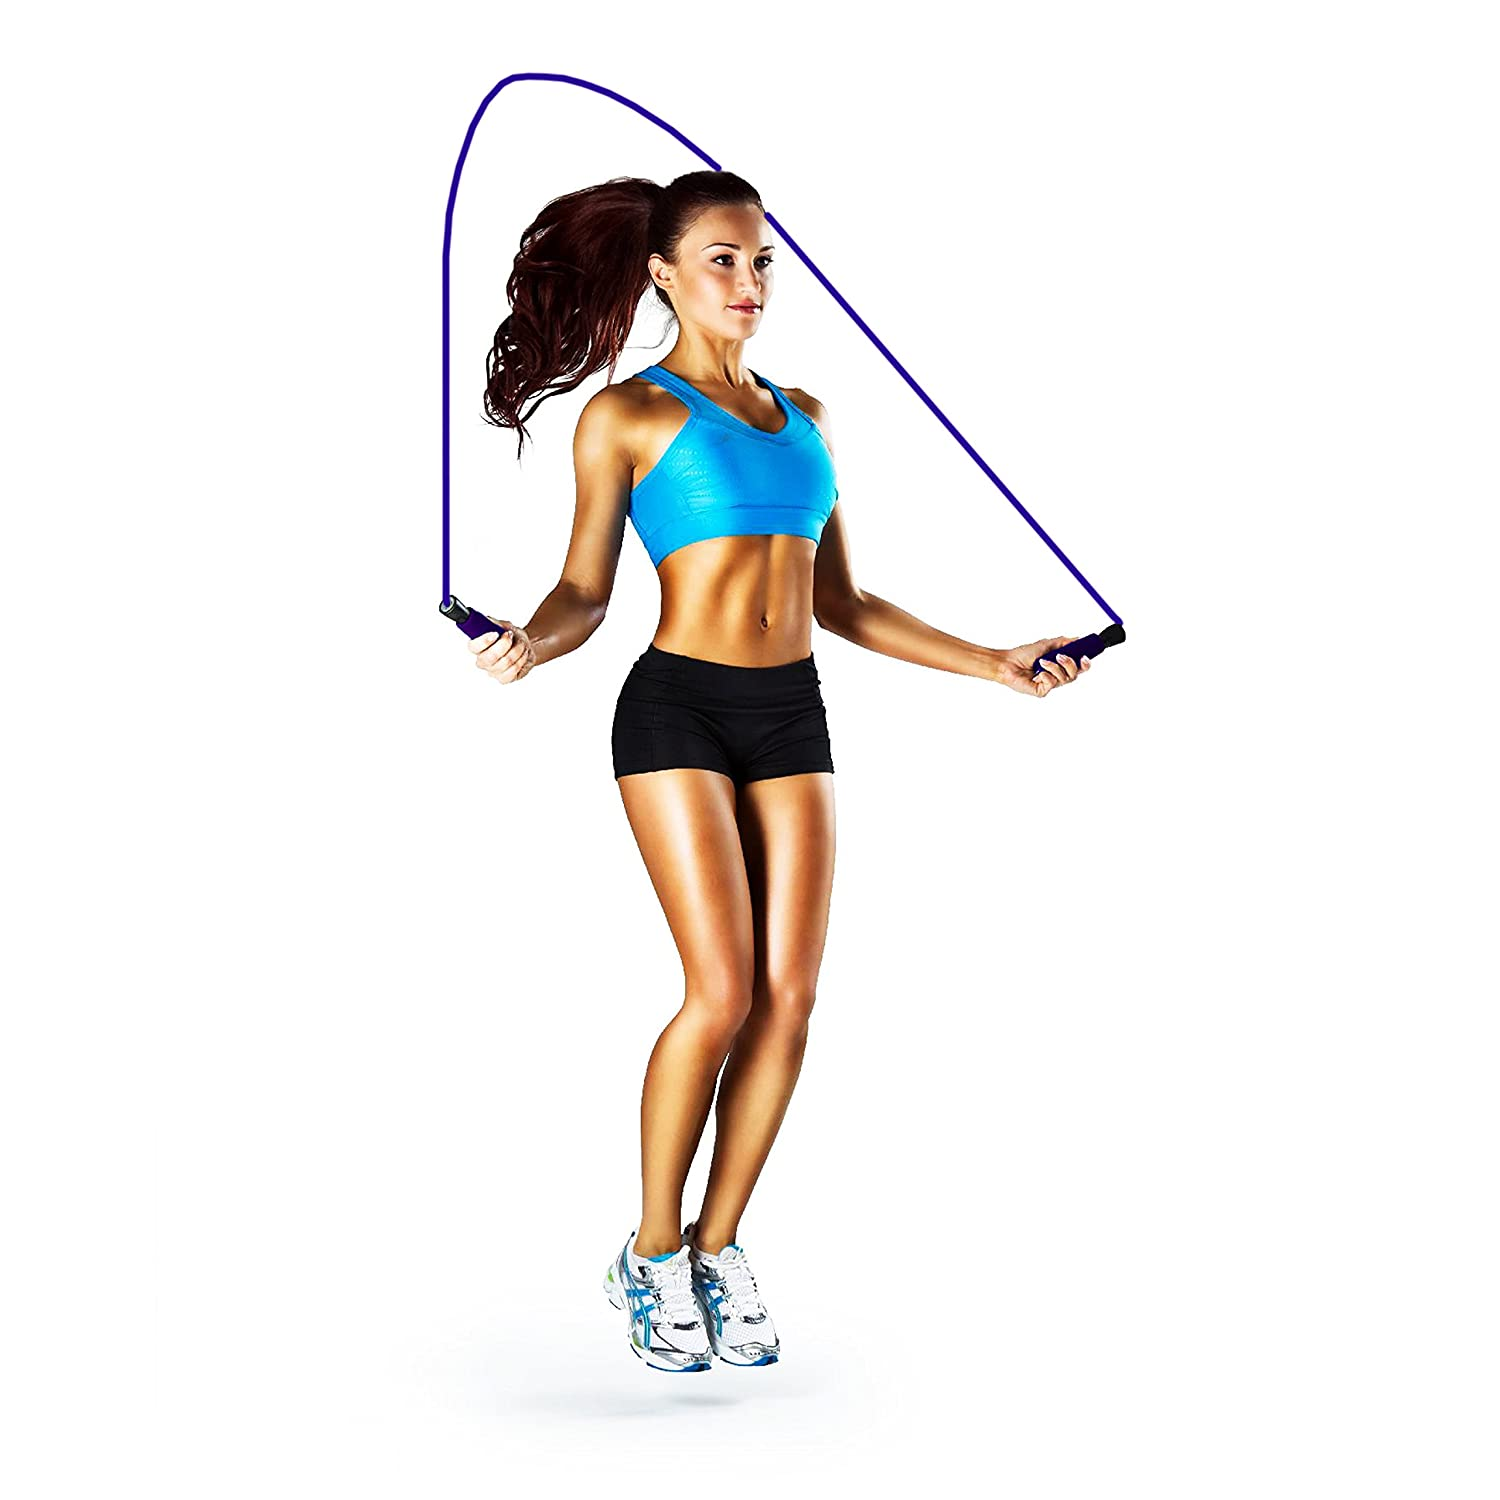 Image result for jumping rope